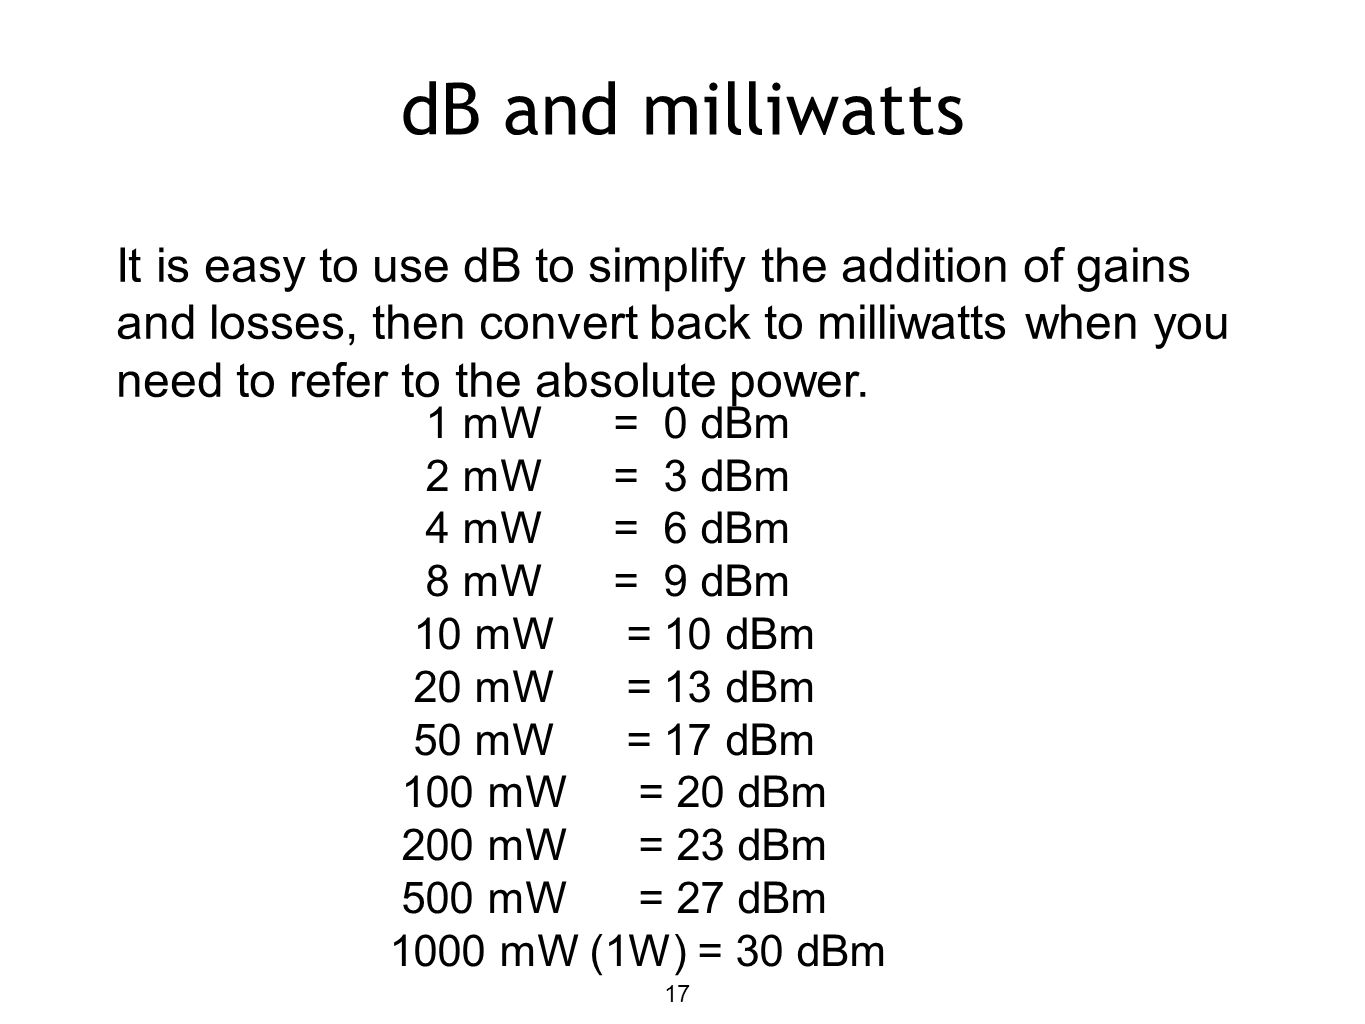 dB and milliwatts